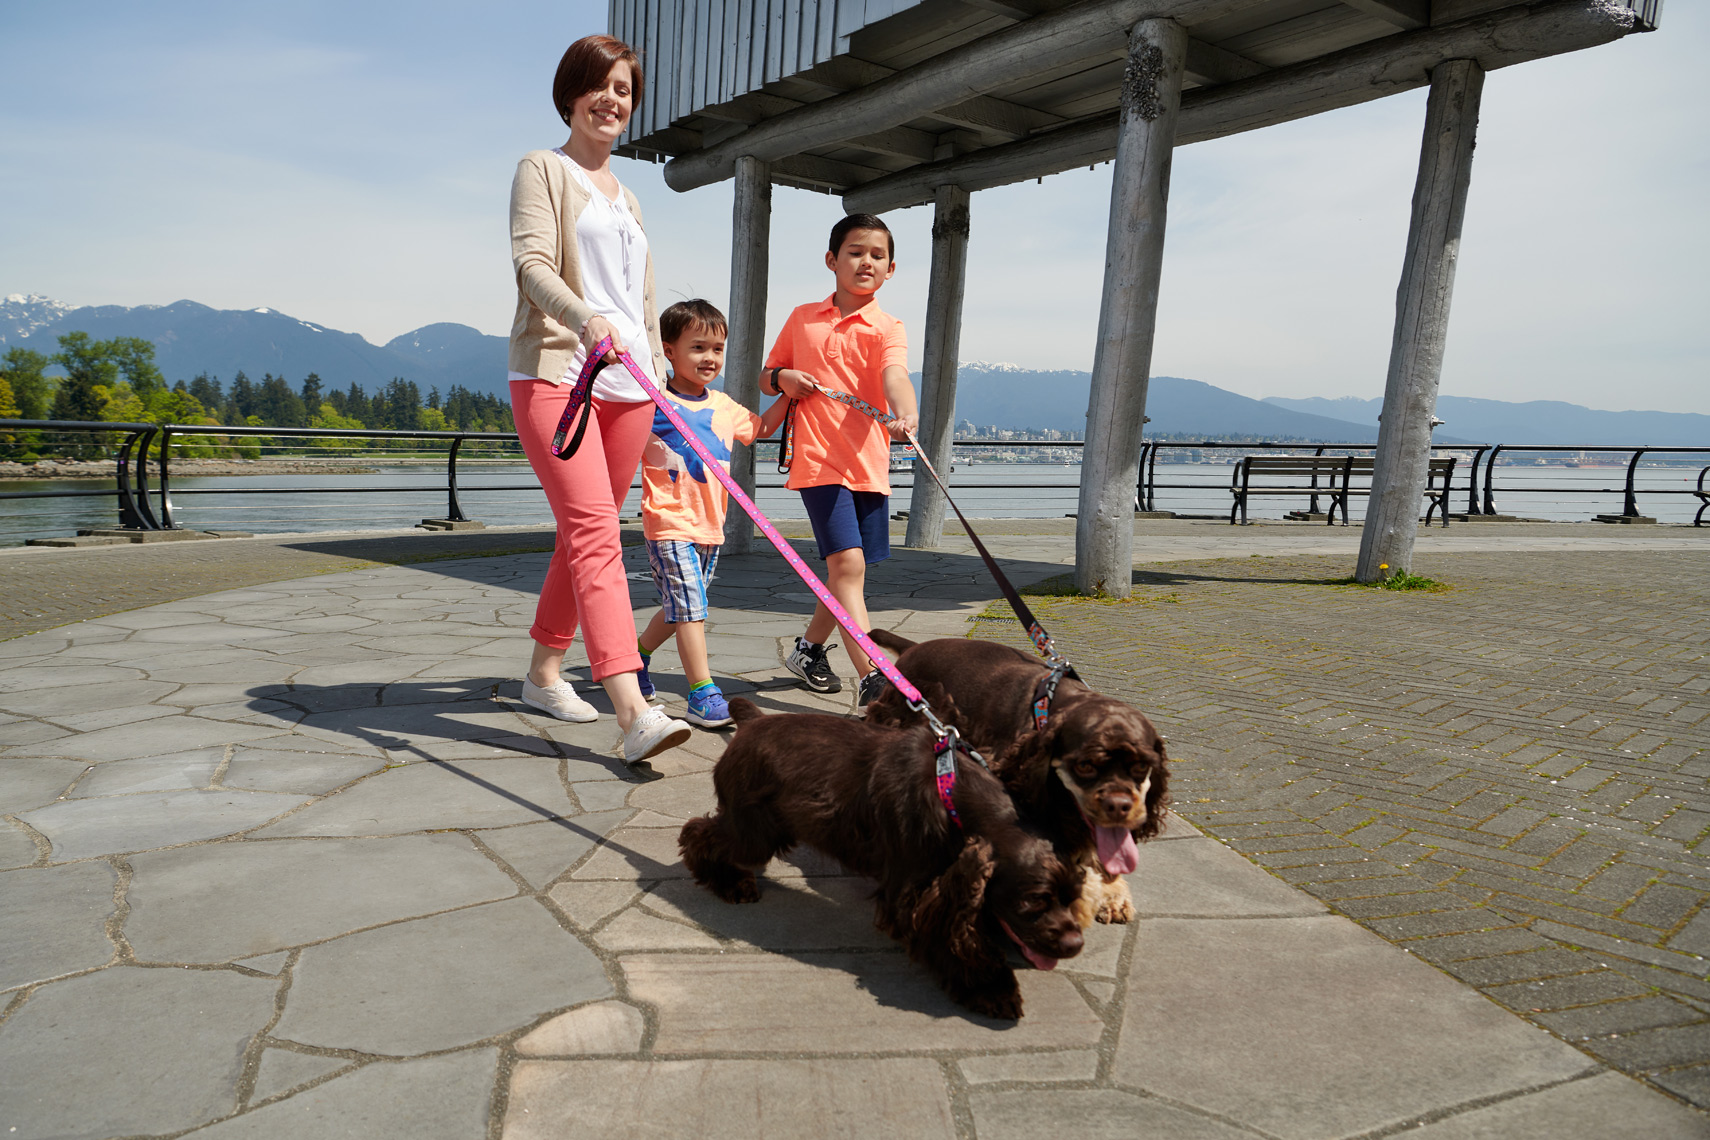 2018-Vancouver-Lifestyle-Photographer-ErichSaide-Advertising-RCPets-Summer-StanleyPark-Family